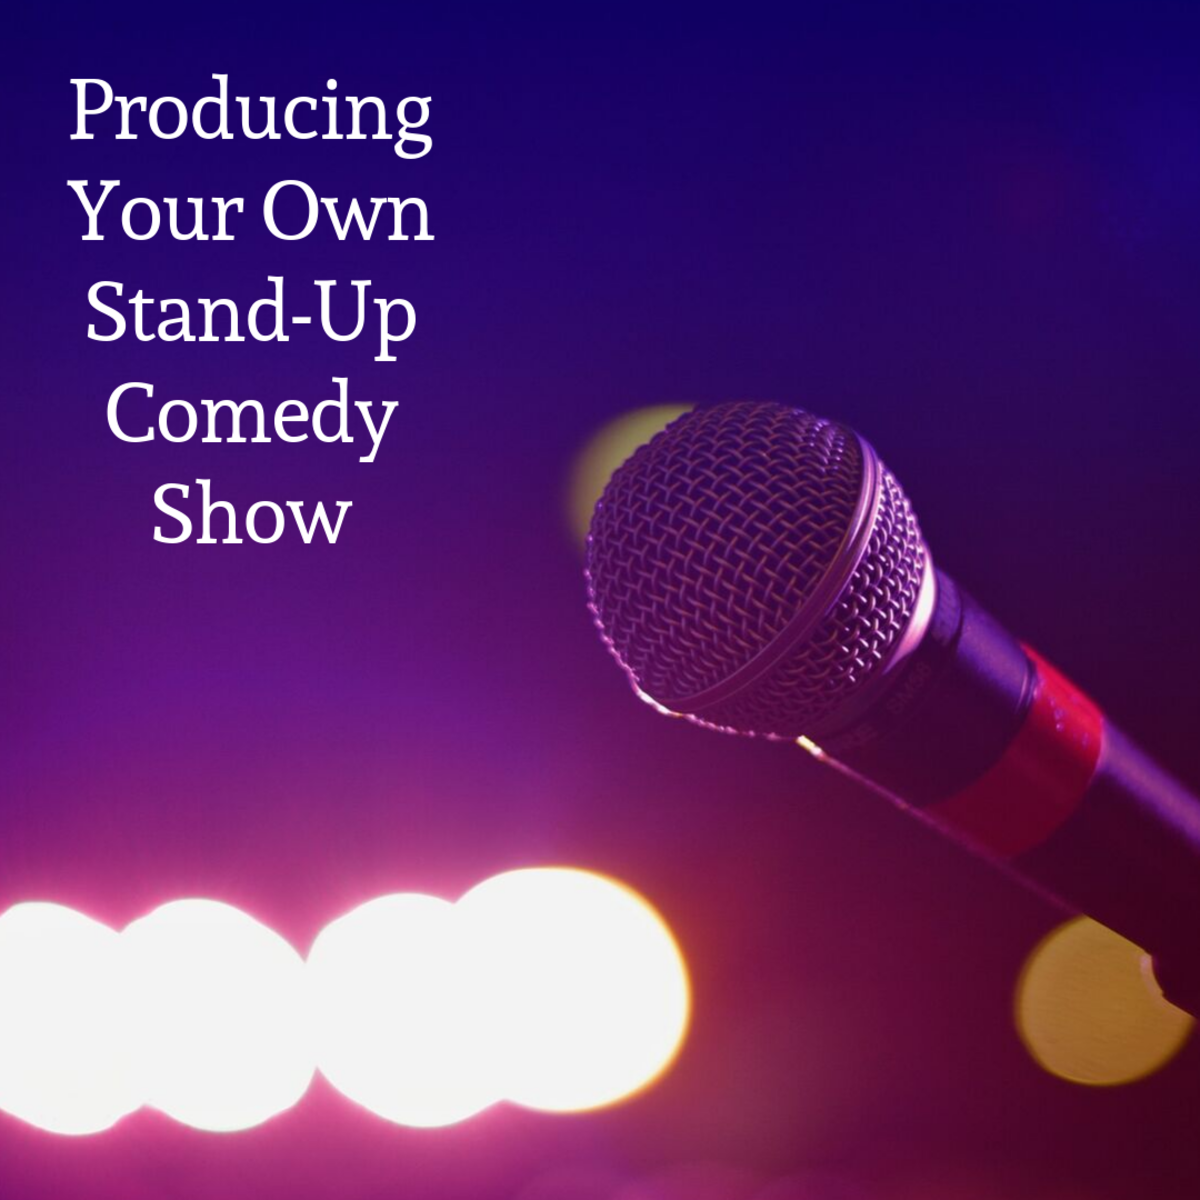 This article will breakdown how to produce your own stand-up comedy show.